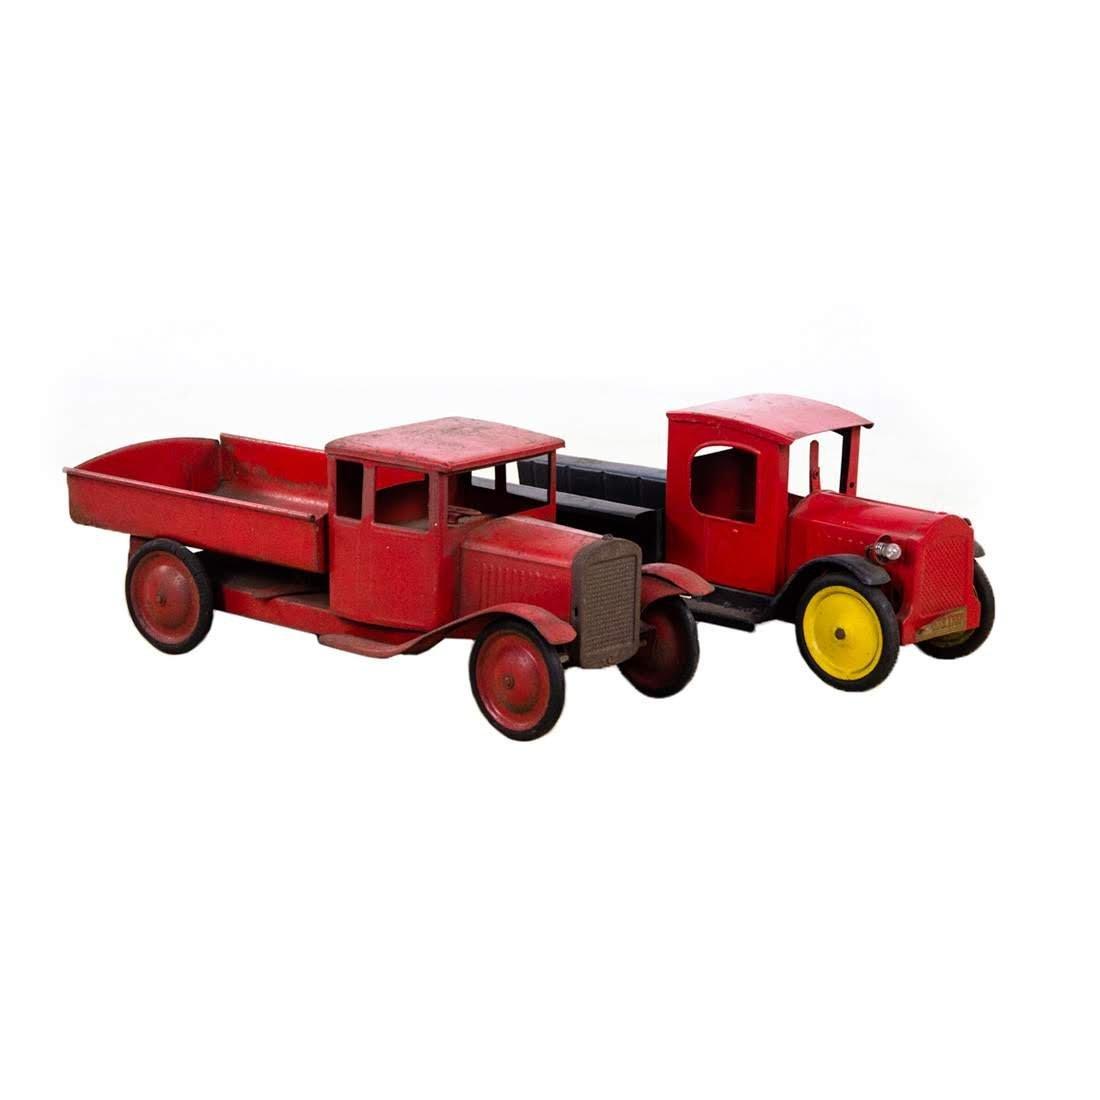 Early Selecto and Buddy-L Dump Truck Toys